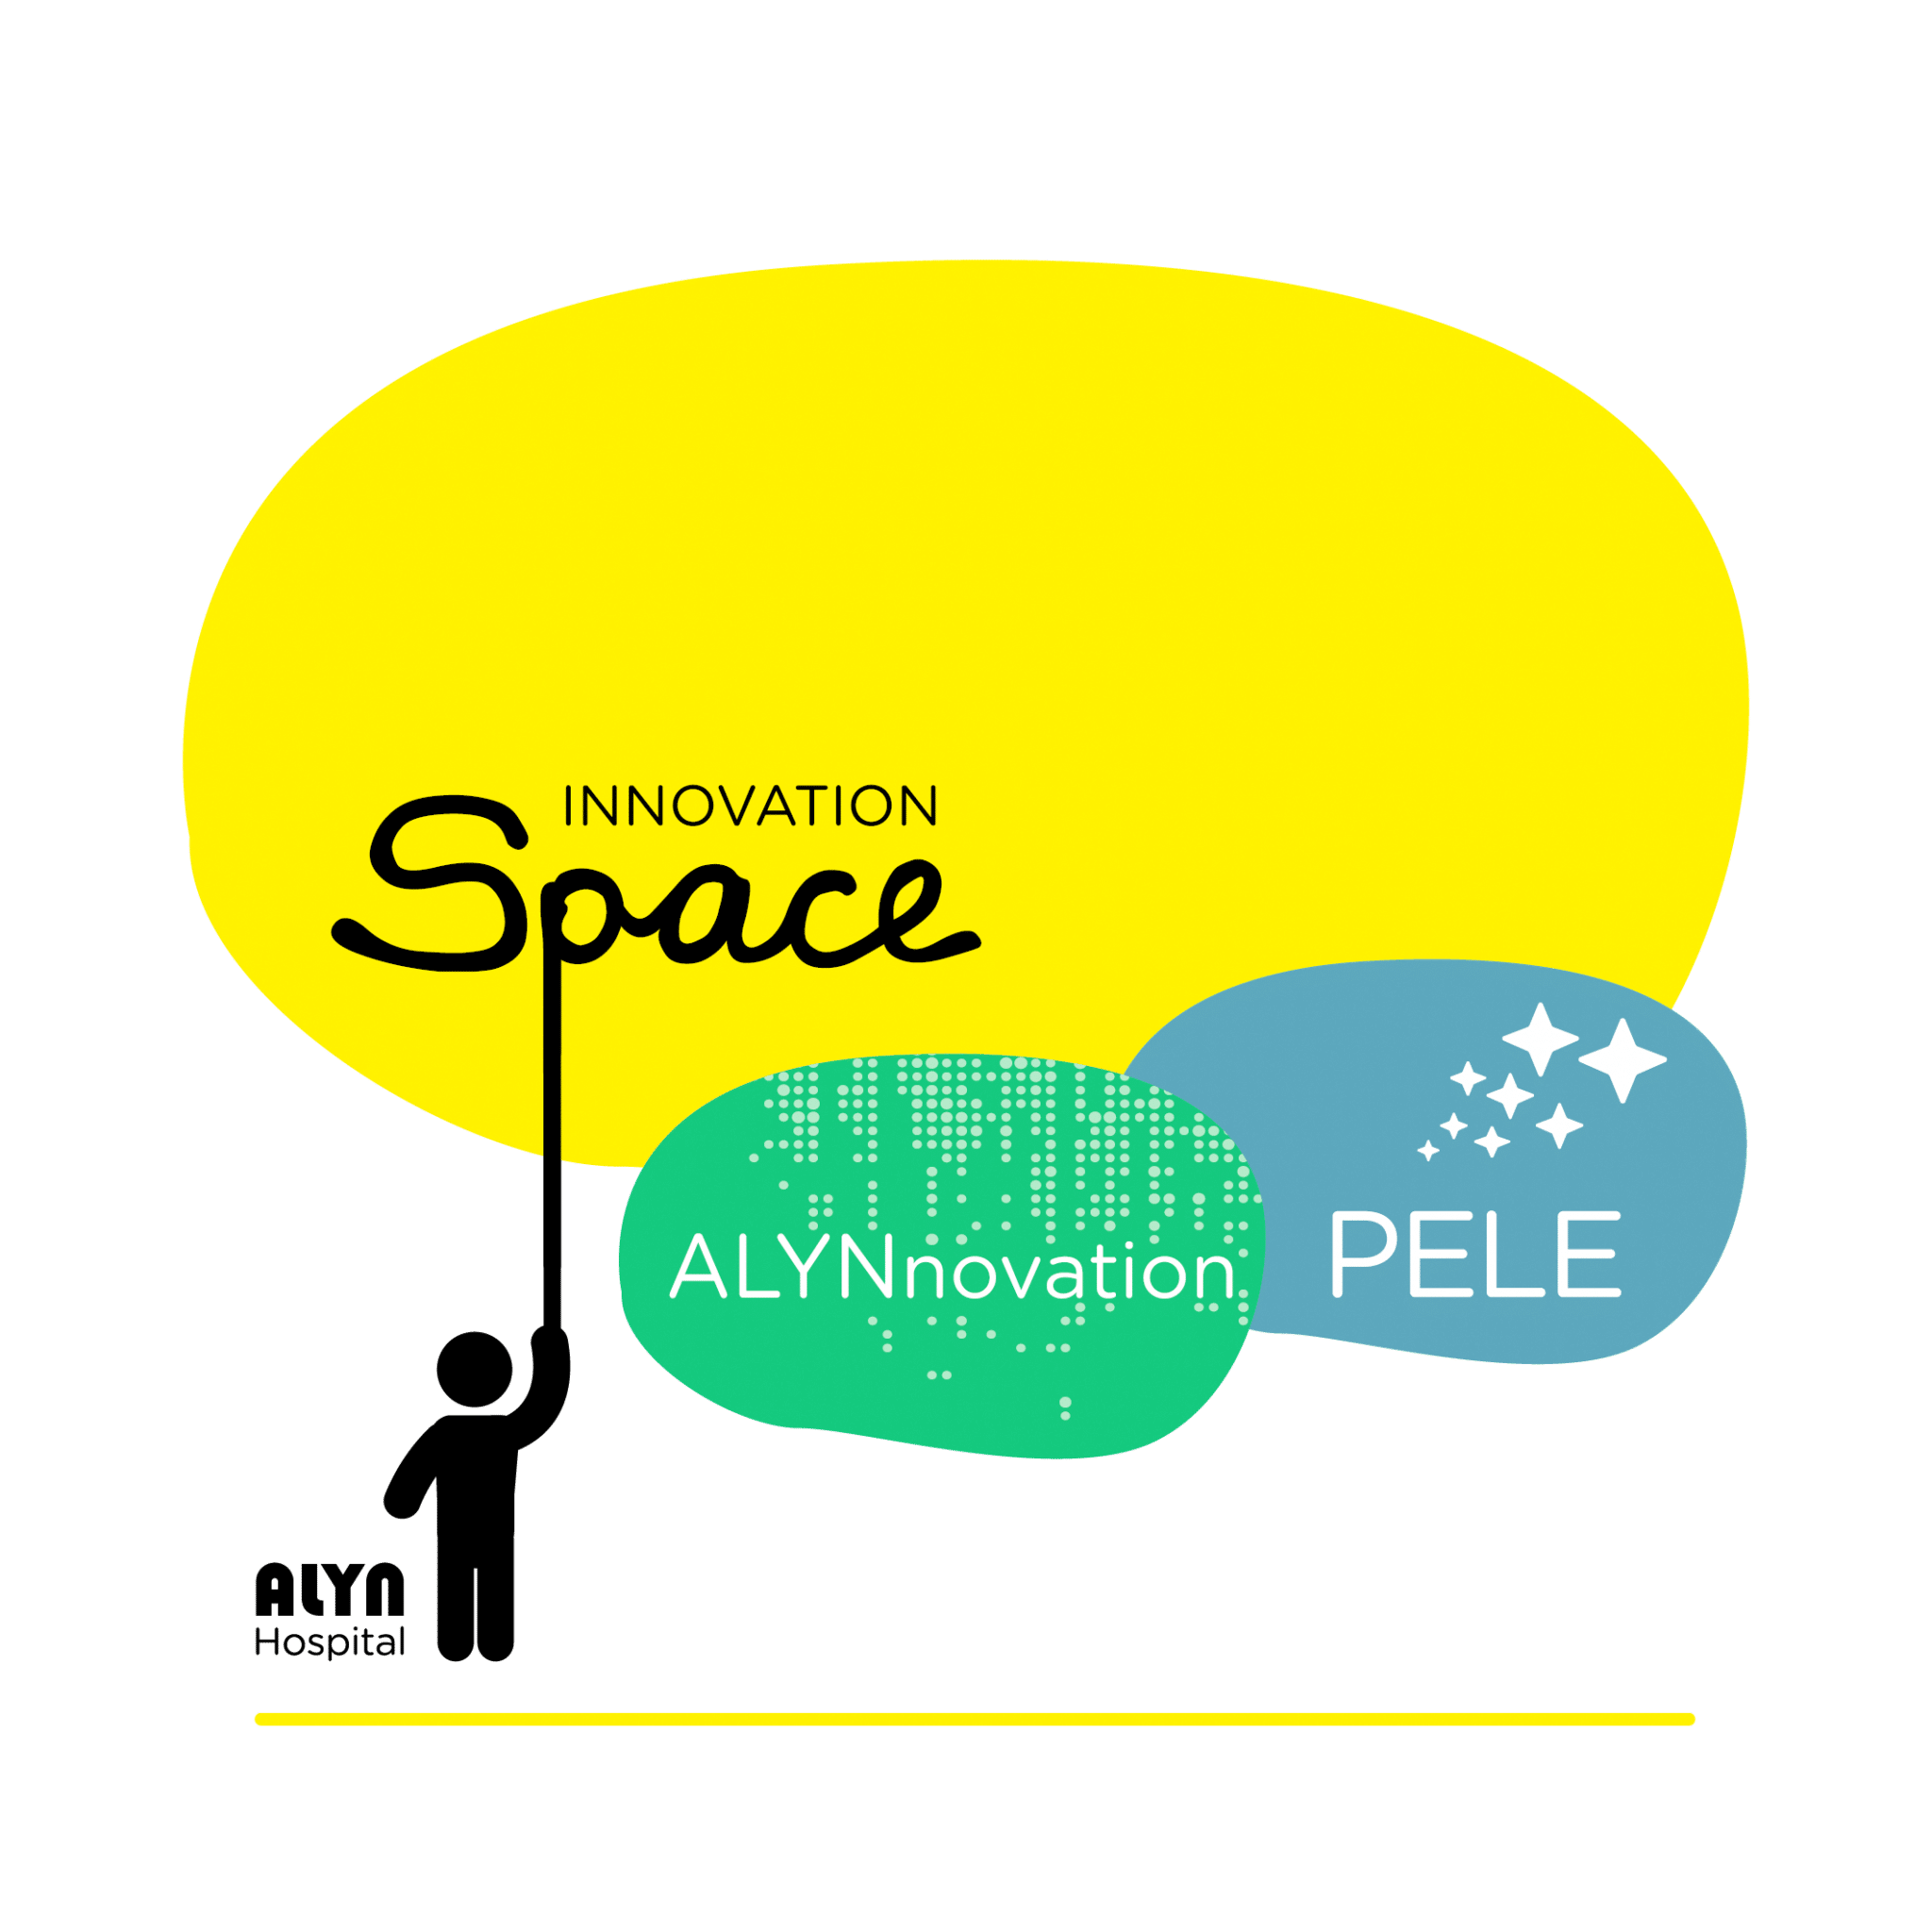 Innovation Space Logos Combined ENG No Background